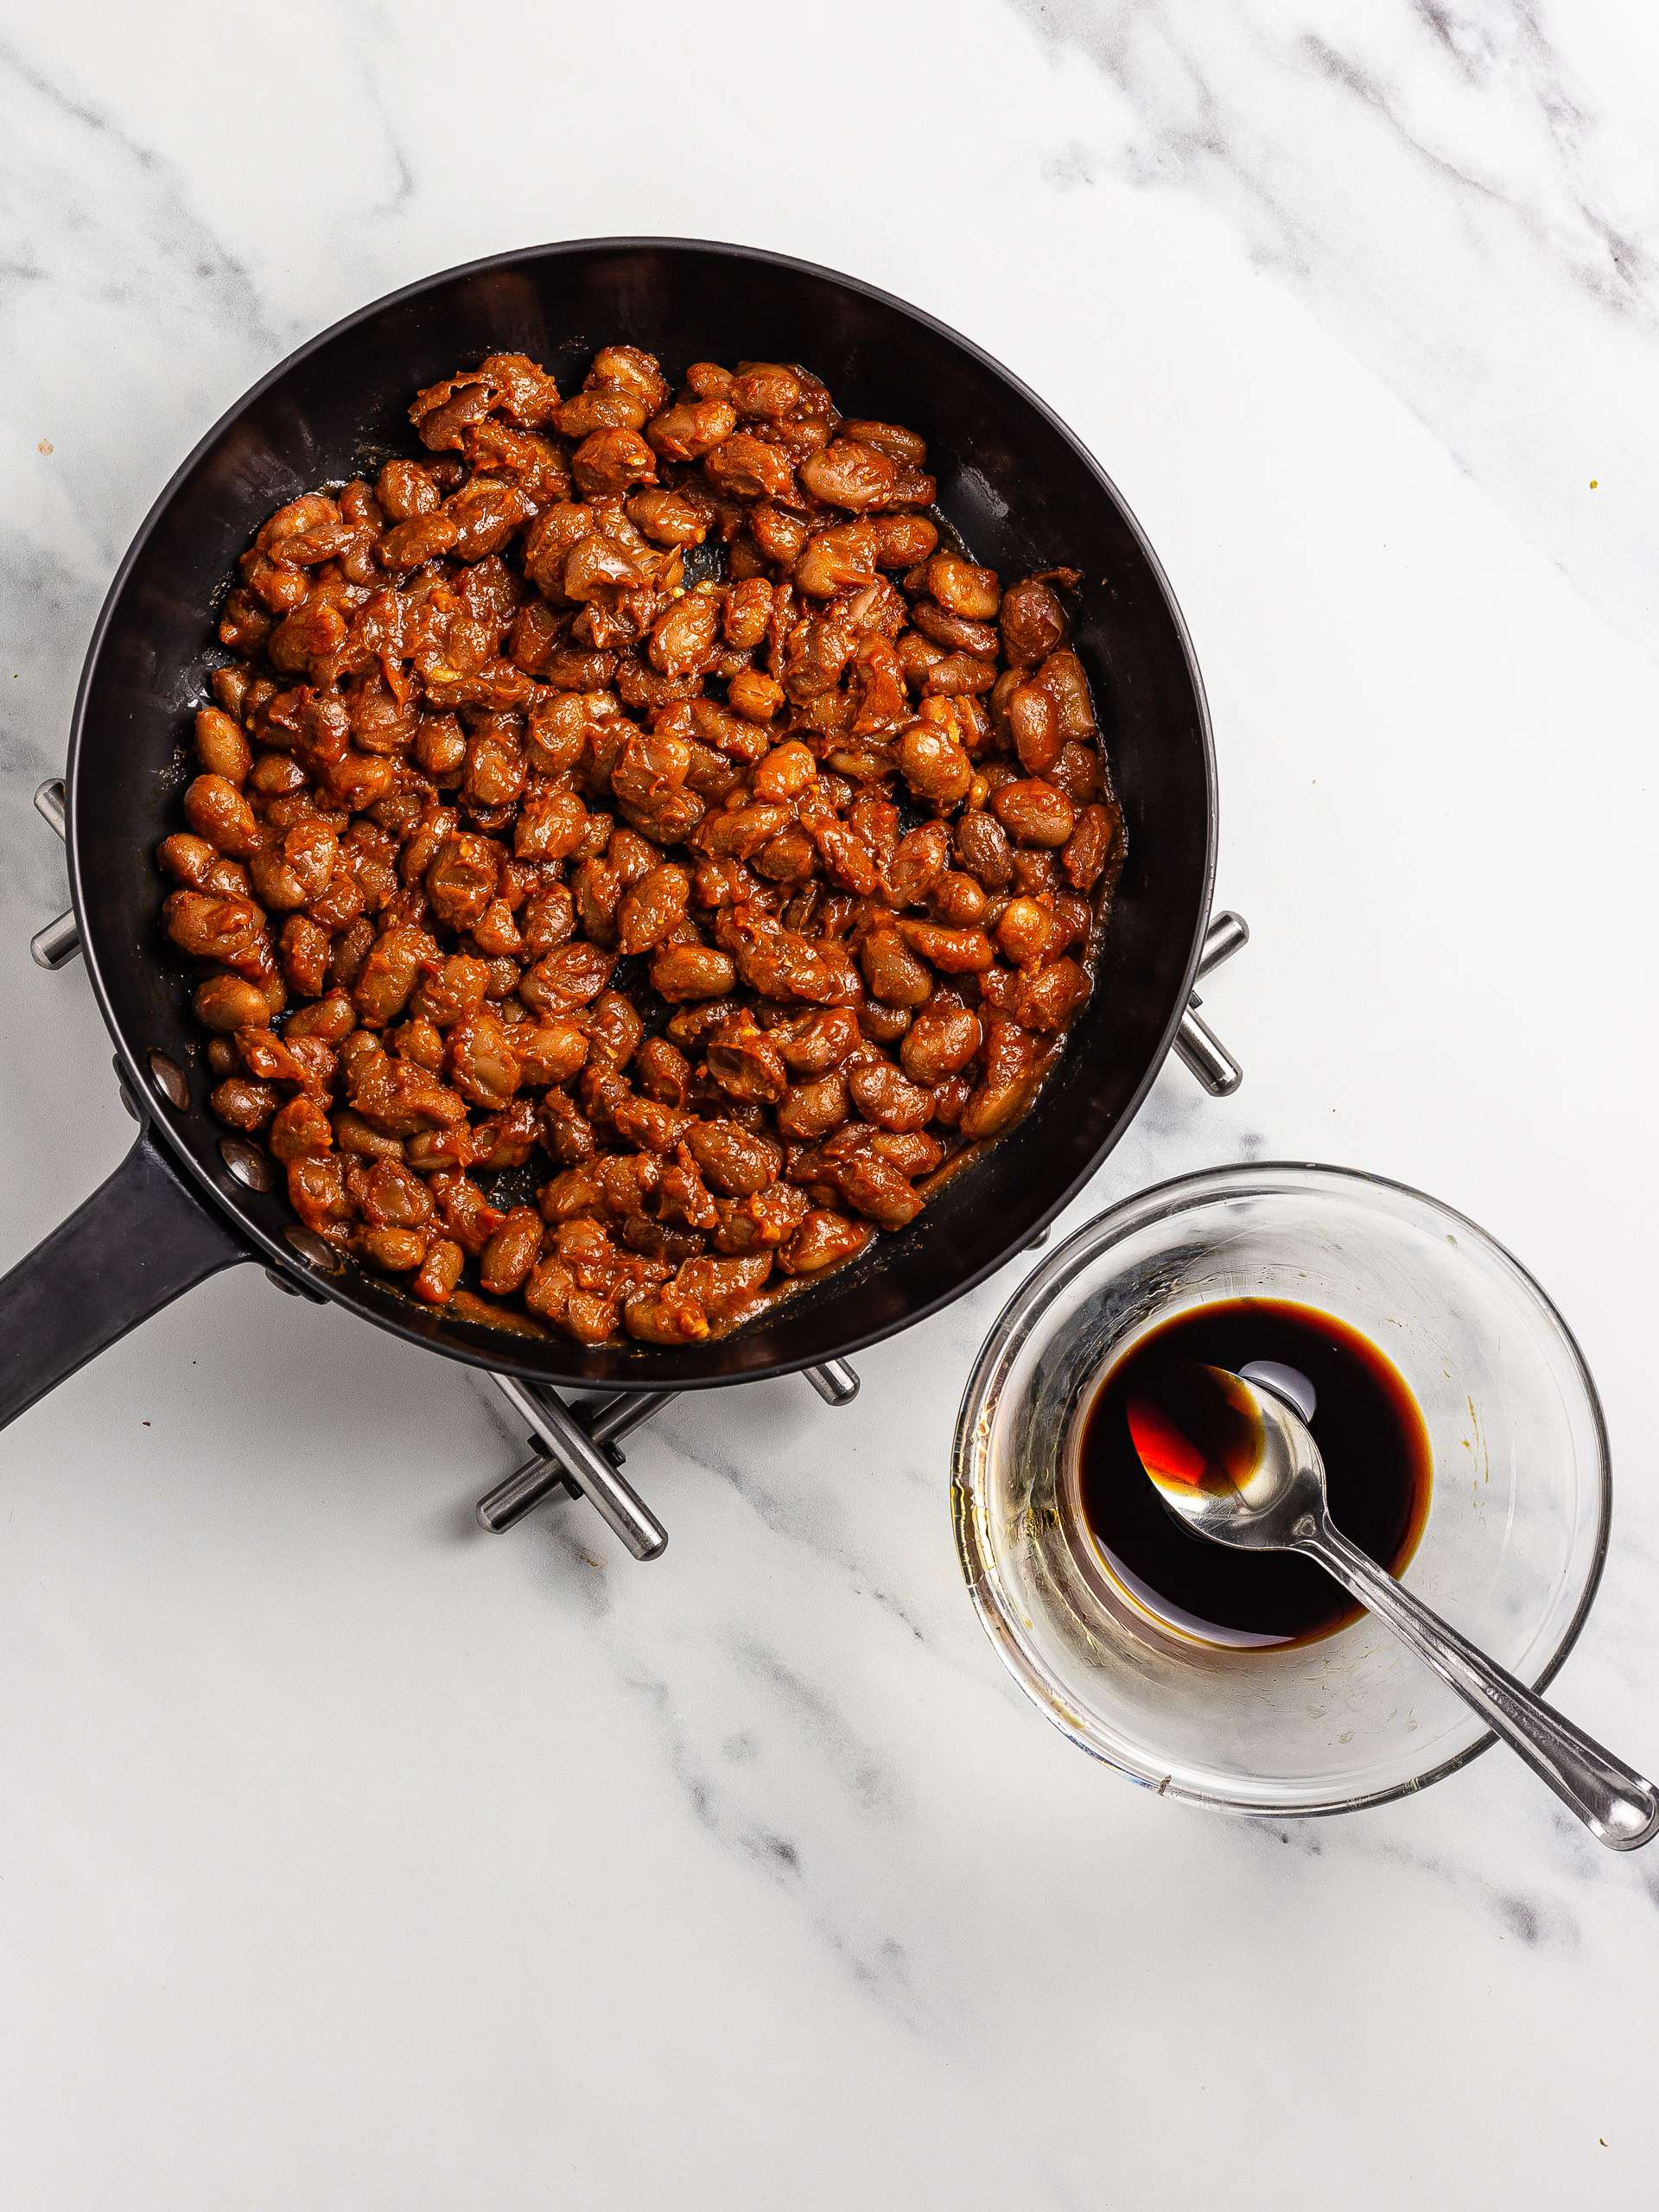 baked beans with maple syrup and soy sauce